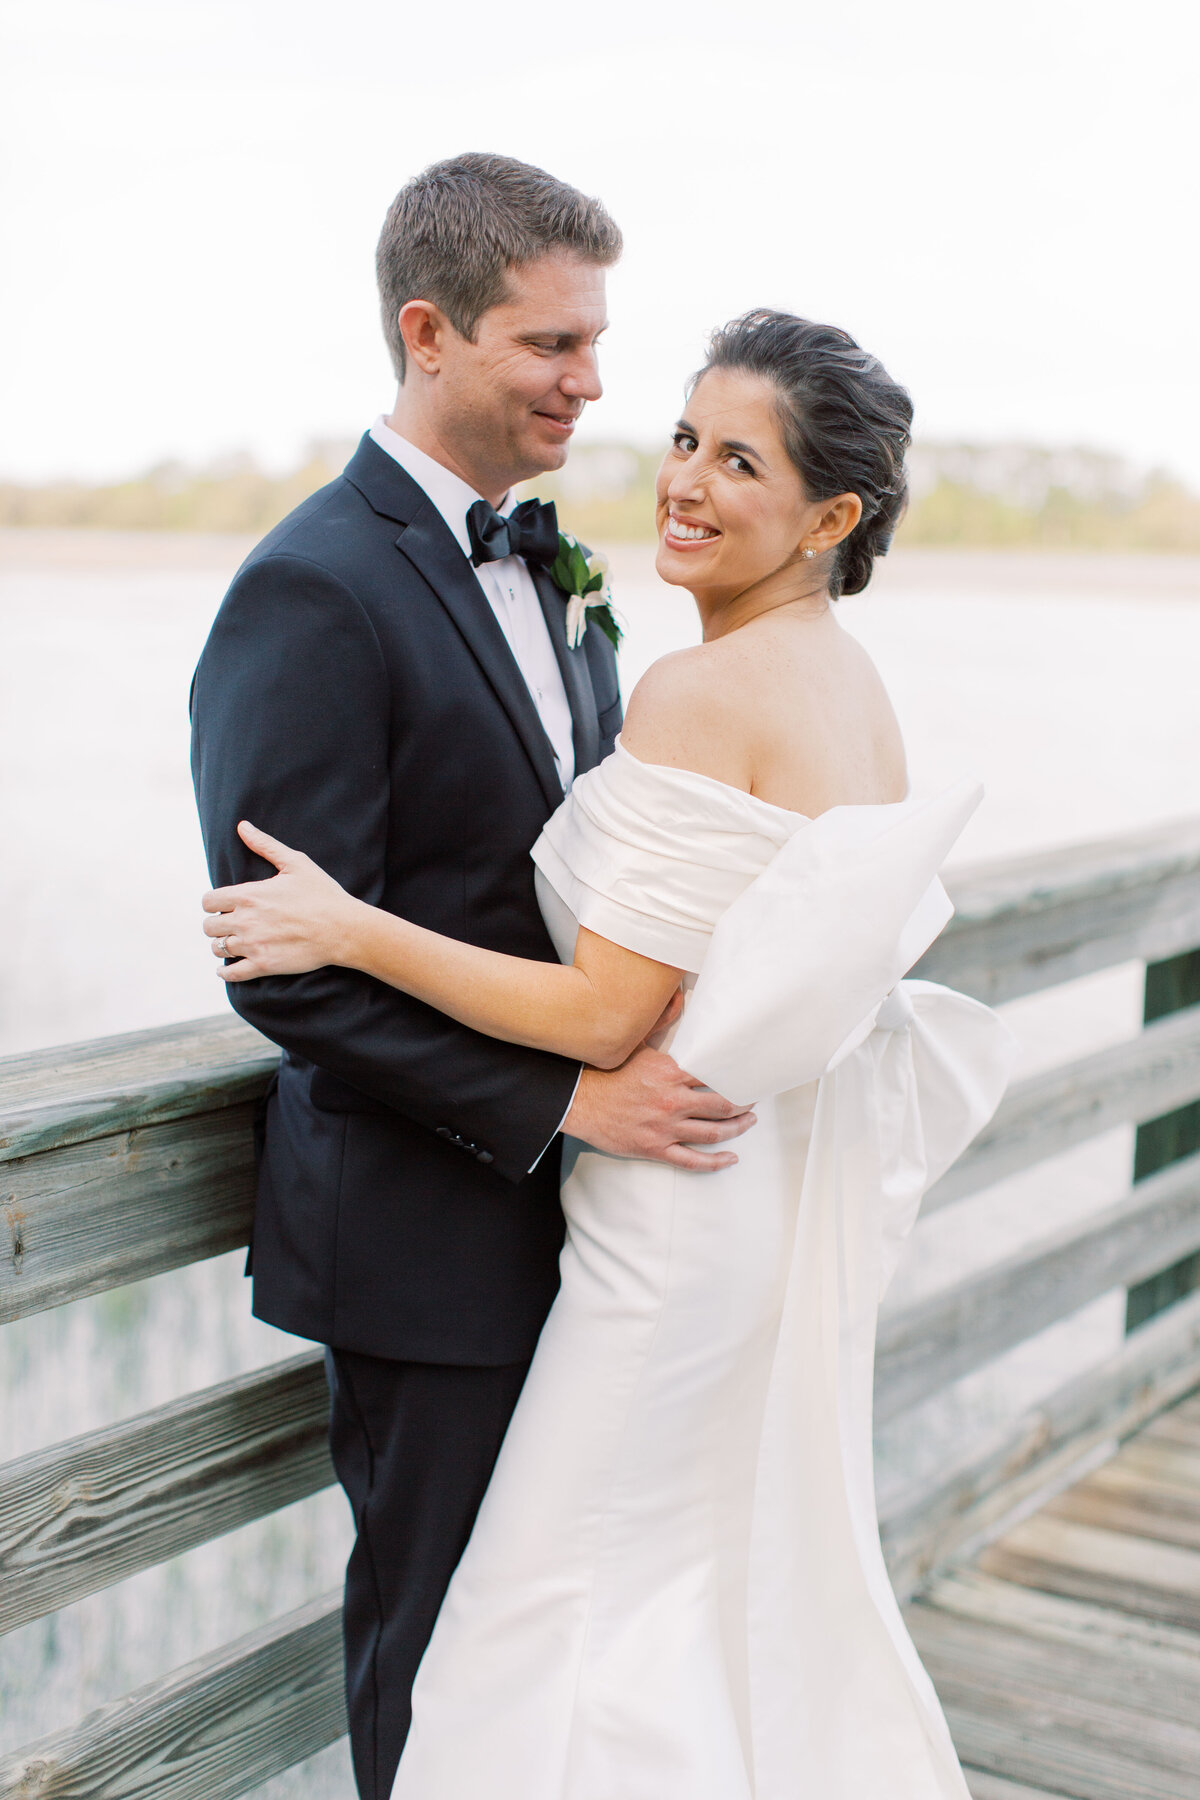 Powell_Oldfield_River_Club_Bluffton_South_Carolina_Beaufort_Savannah_Wedding_Jacksonville_Florida_Devon_Donnahoo_Photography_0748